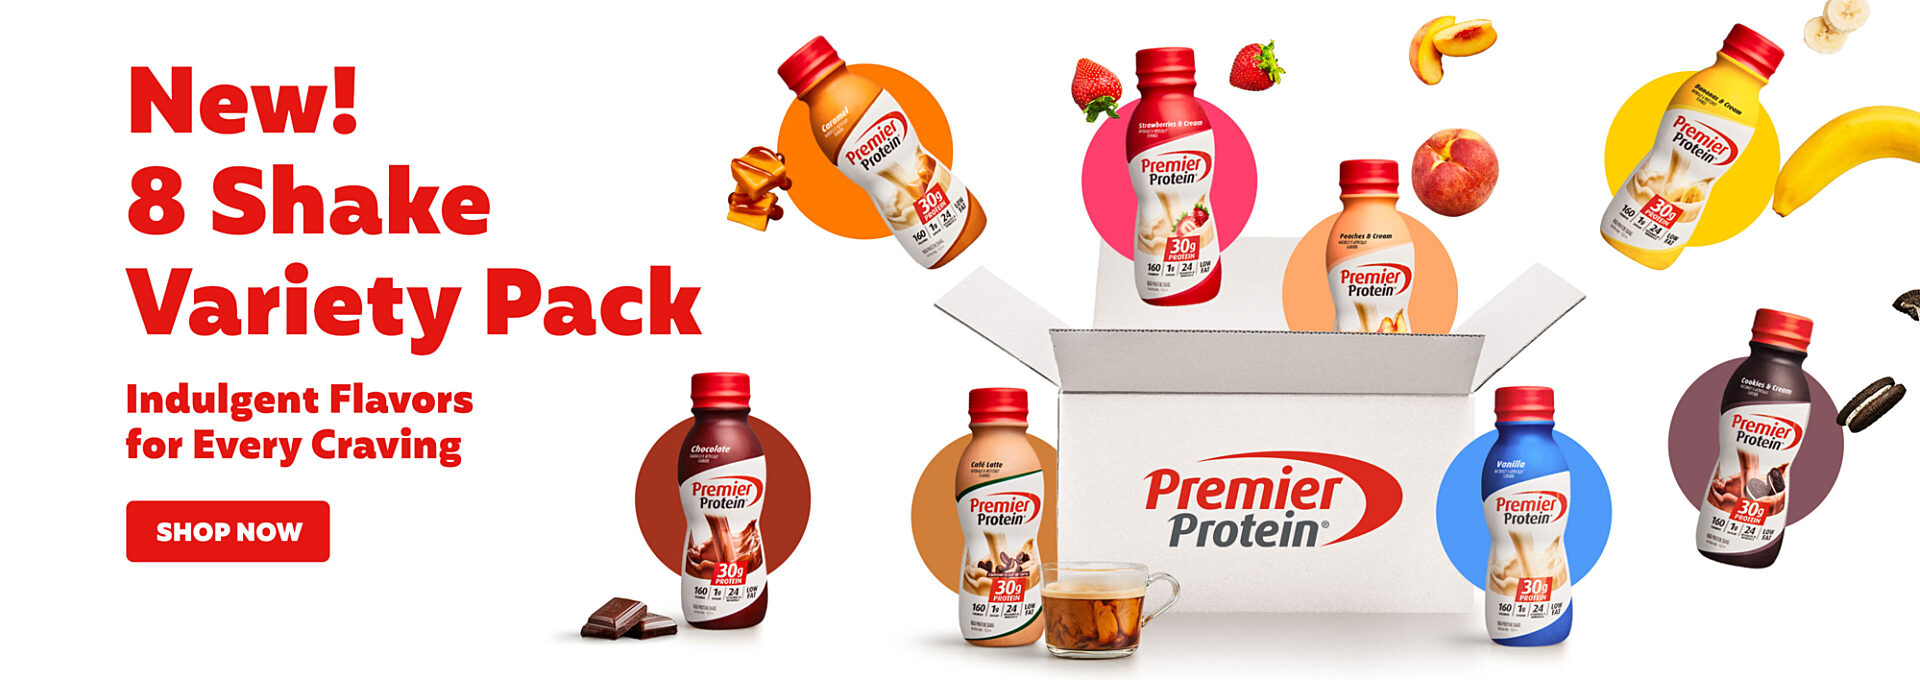 New! 8 Shake Variety Pack.  Indulgent flavors for every crazy.  Shop Now.